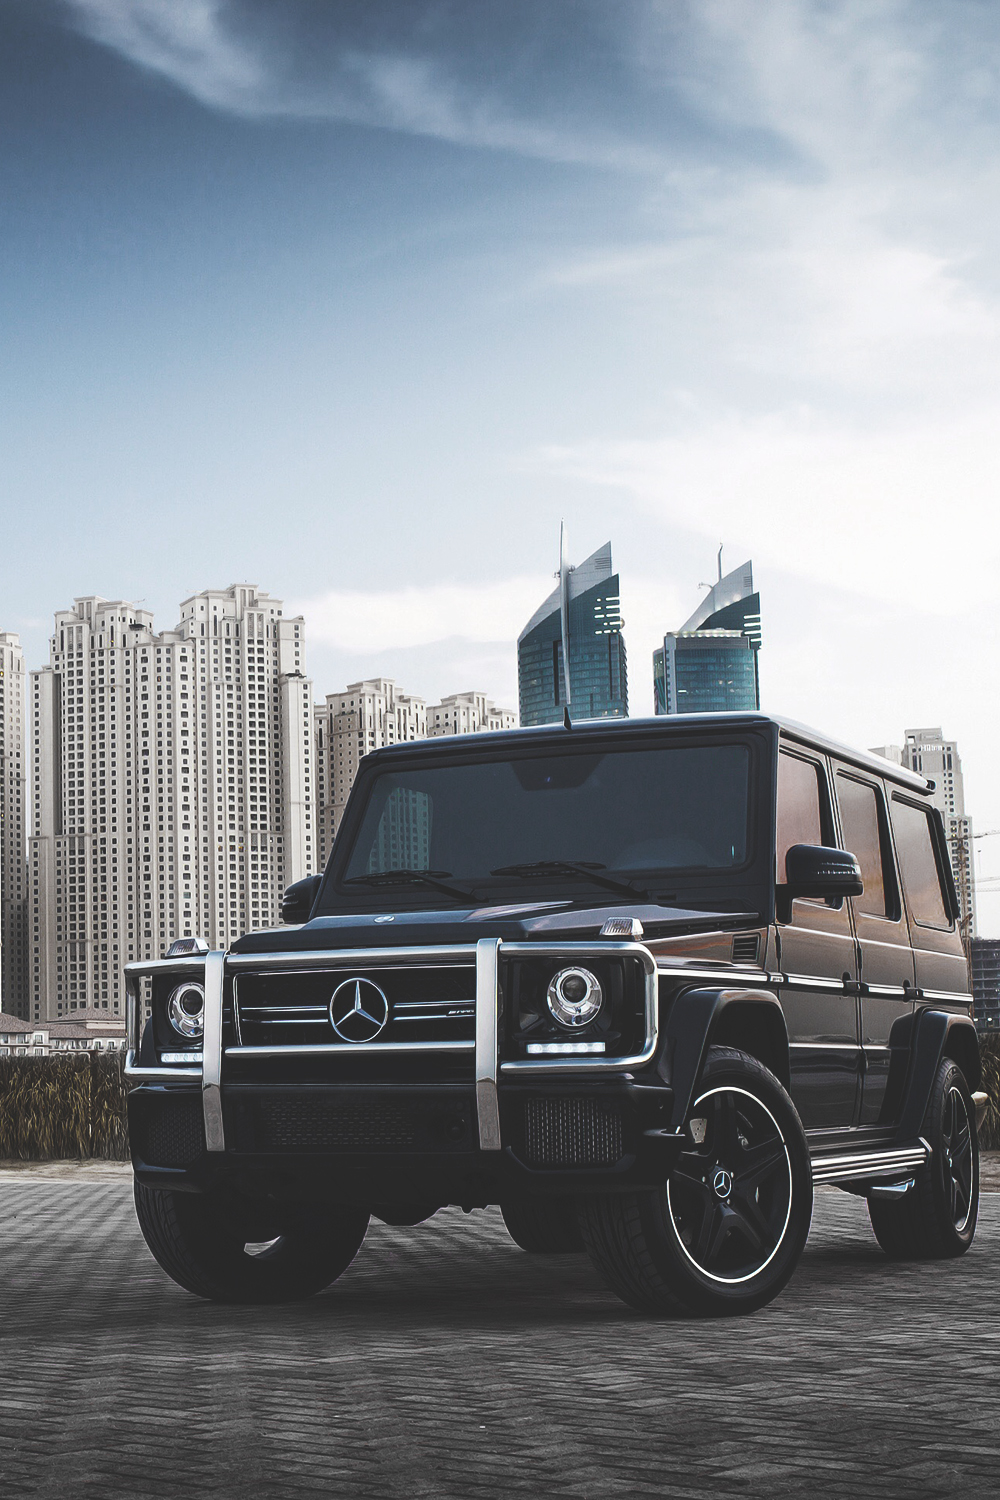 car mercedes truck jeep motorvehicle vehicle wheeledvehicle